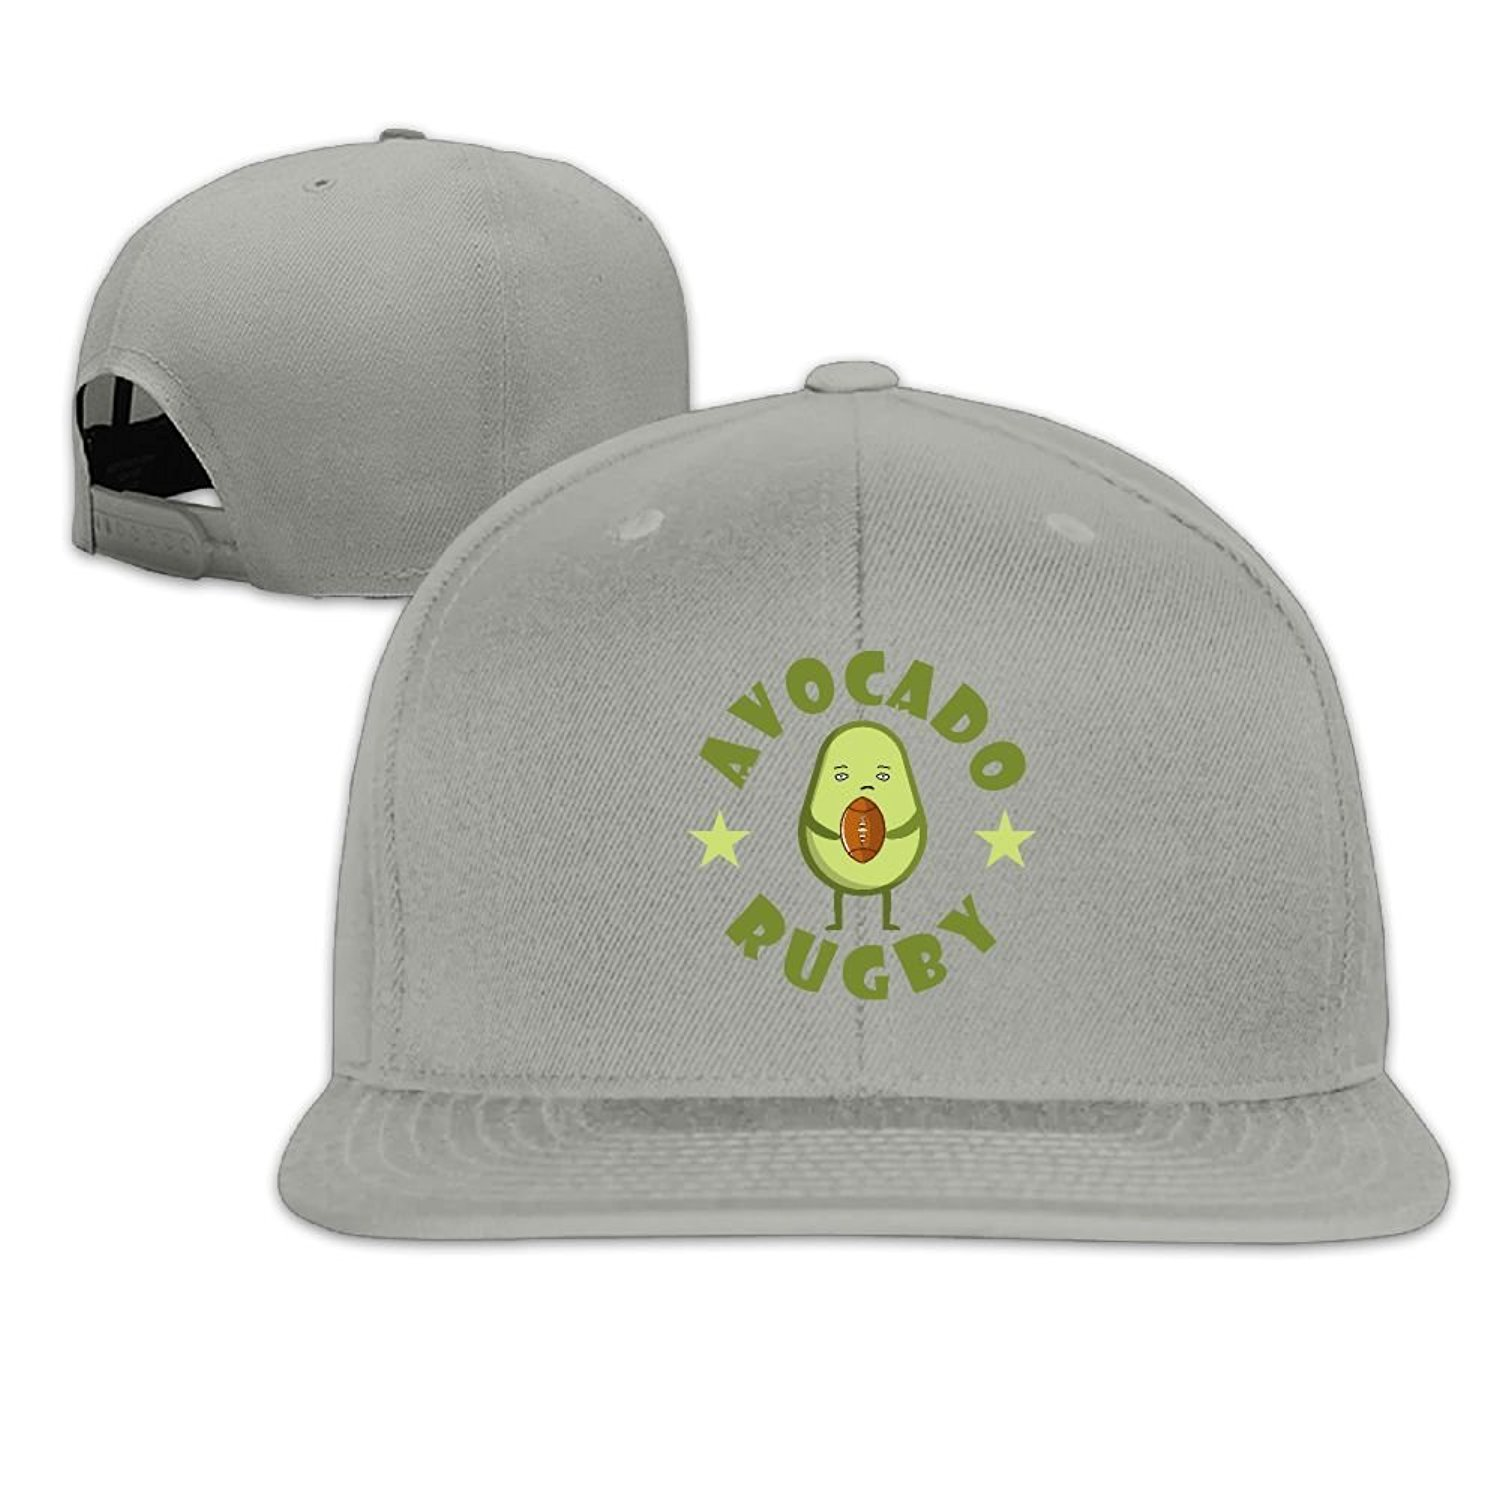 7bd47514424 Get Quotations · Cute Lovely Funny Avocado Rugby Football Hip Hop Snapback  Baseball Caps For Men Women